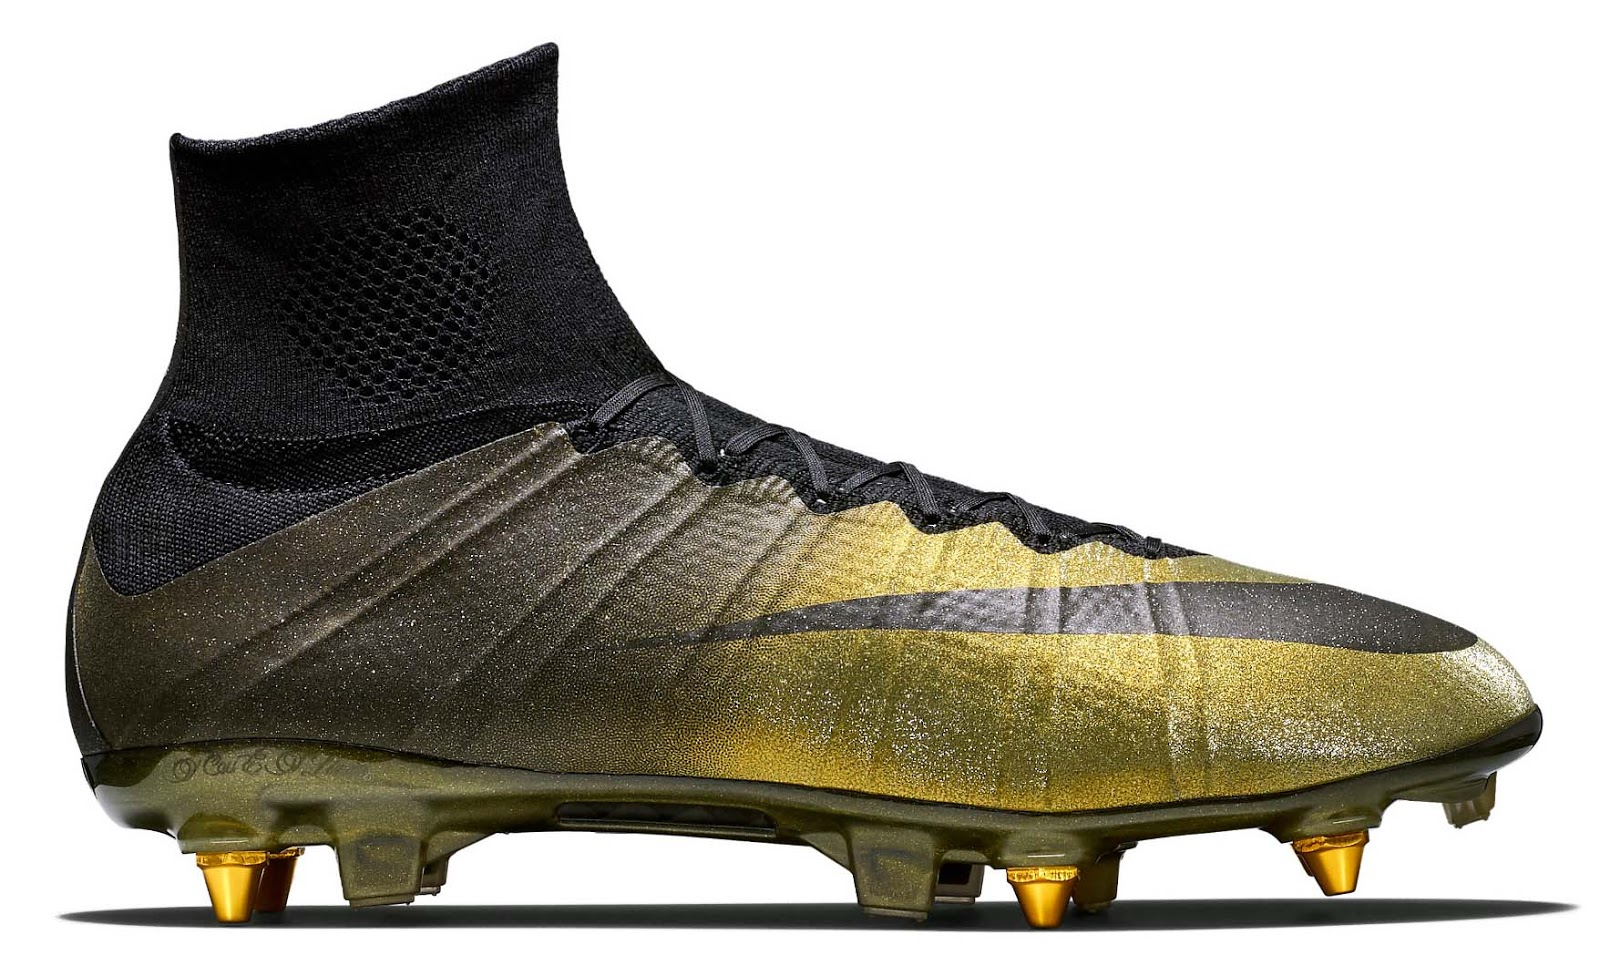 super popular e24a0 4412b Nike Superfly Cr7 Rare Gold Price Cr7 Superfly 4 | Обекти